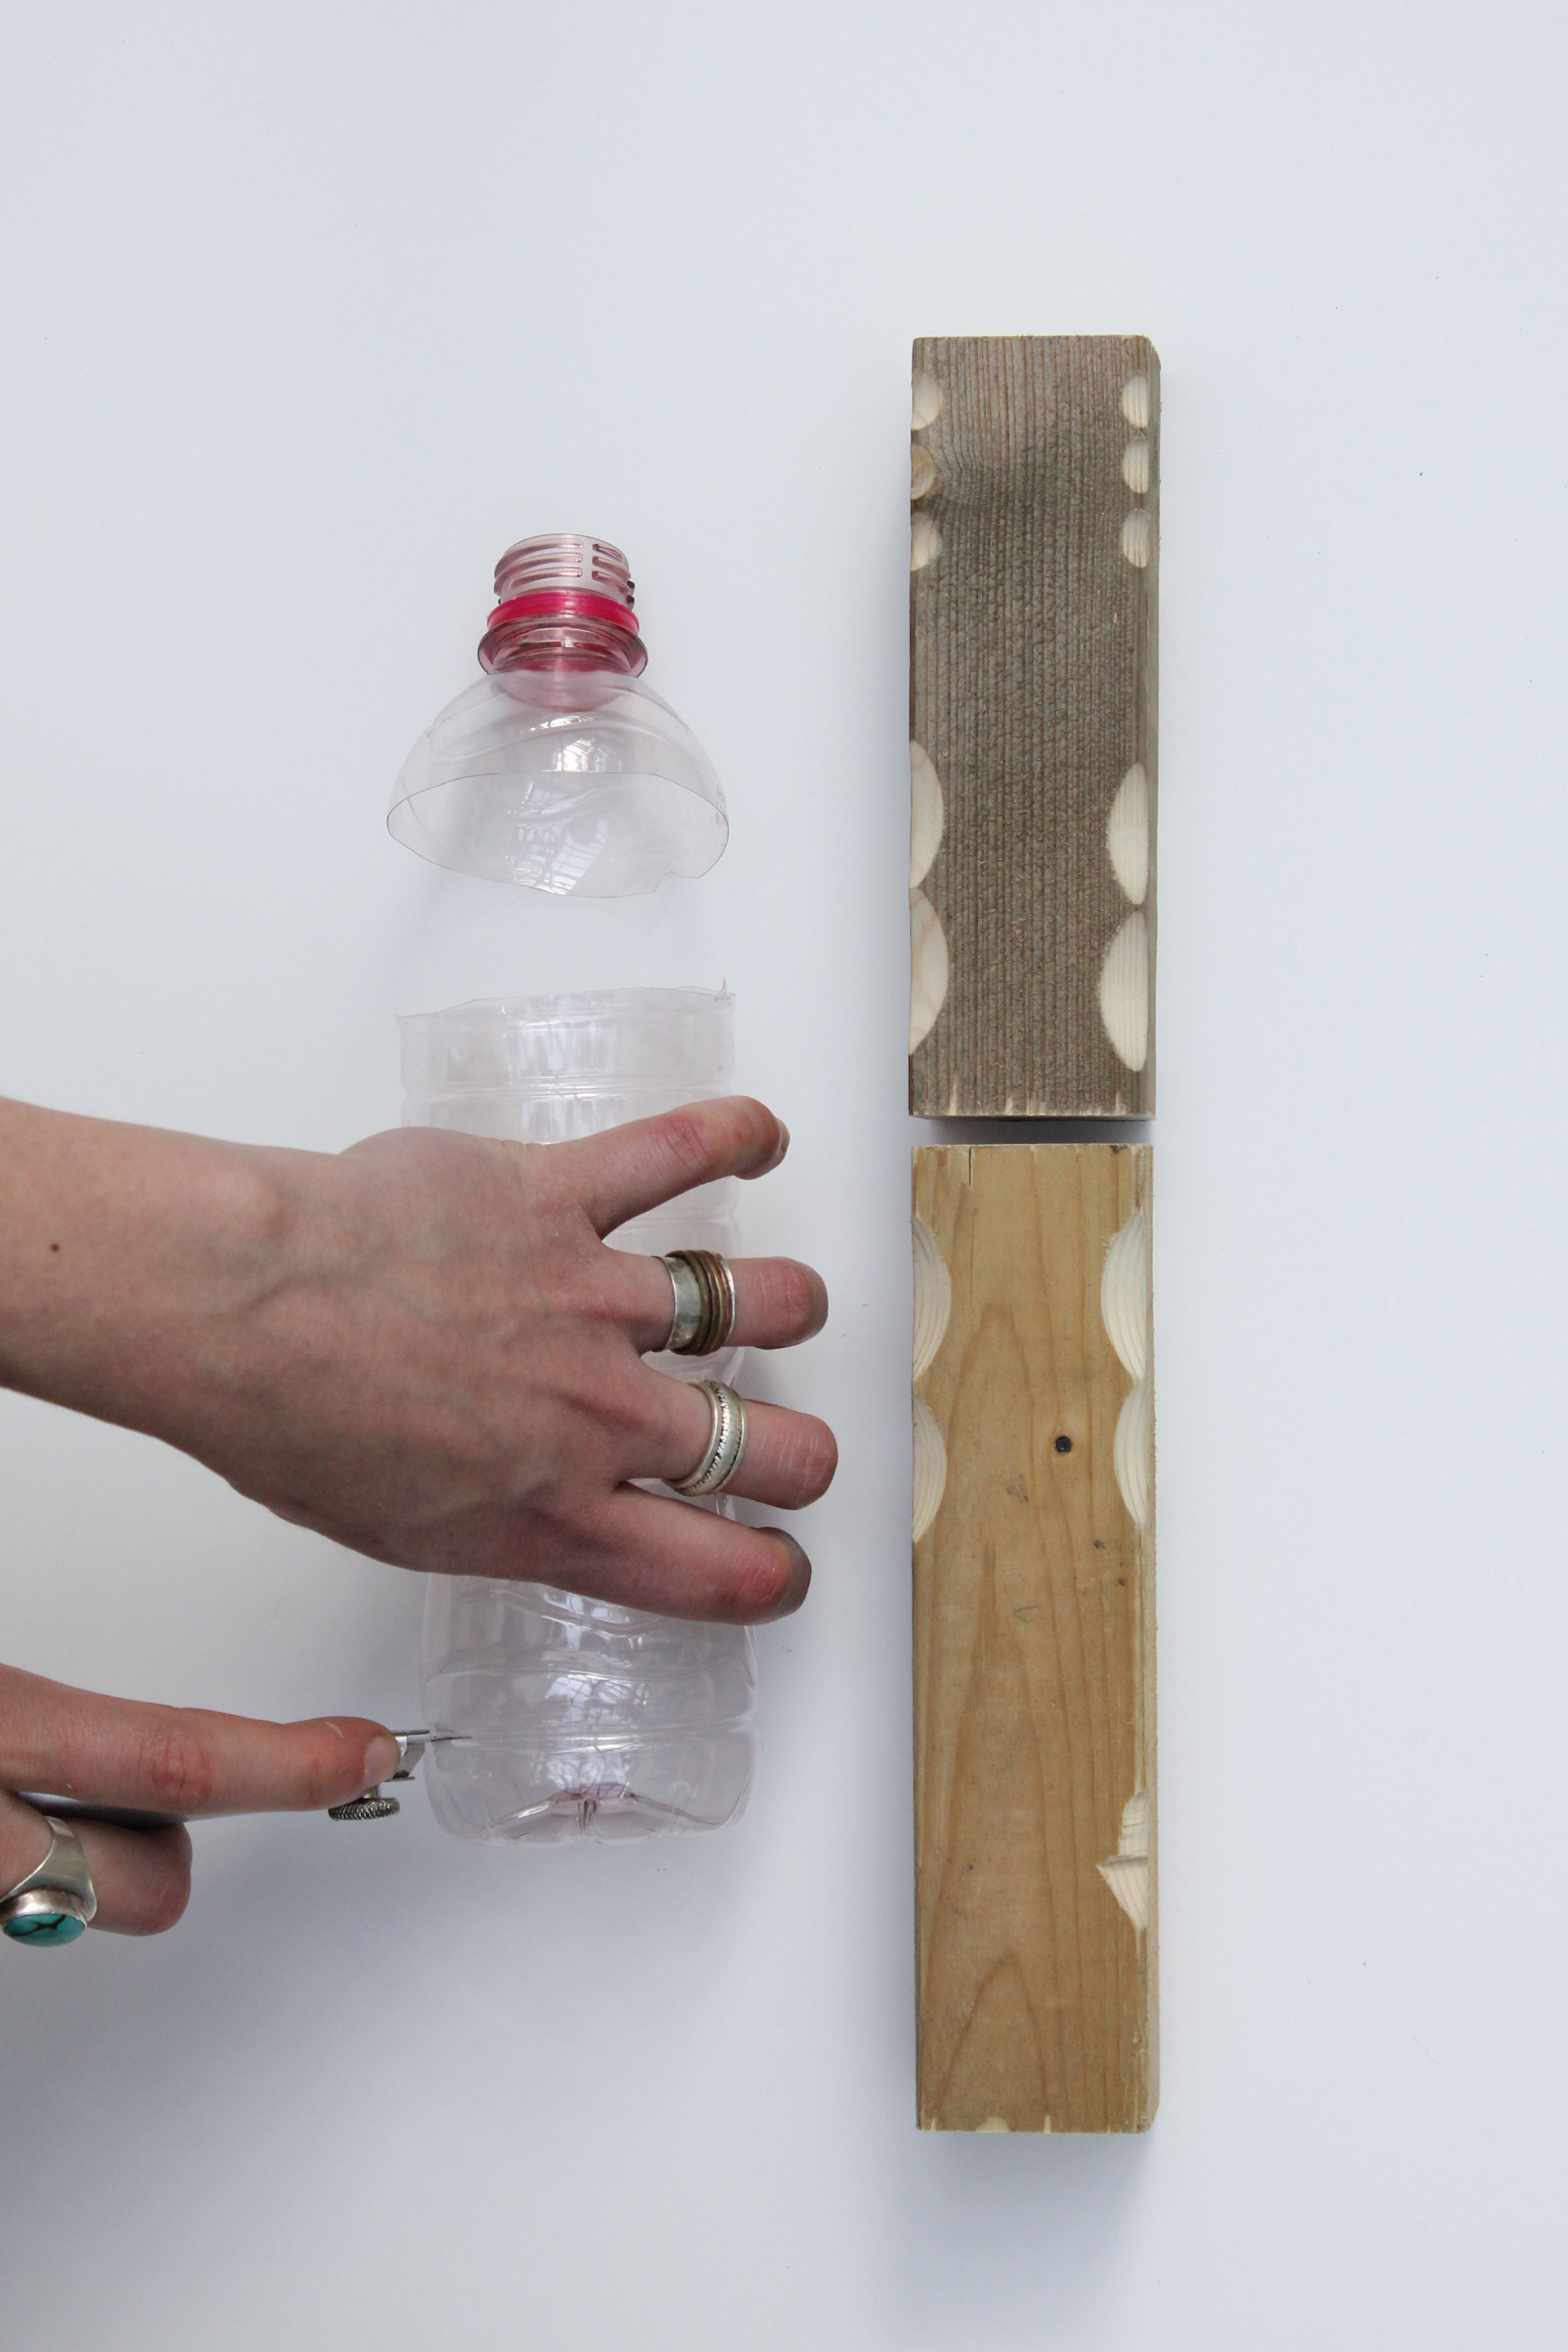 The components of the joint created with the  Joining Bottles technique by Micaella Pedro